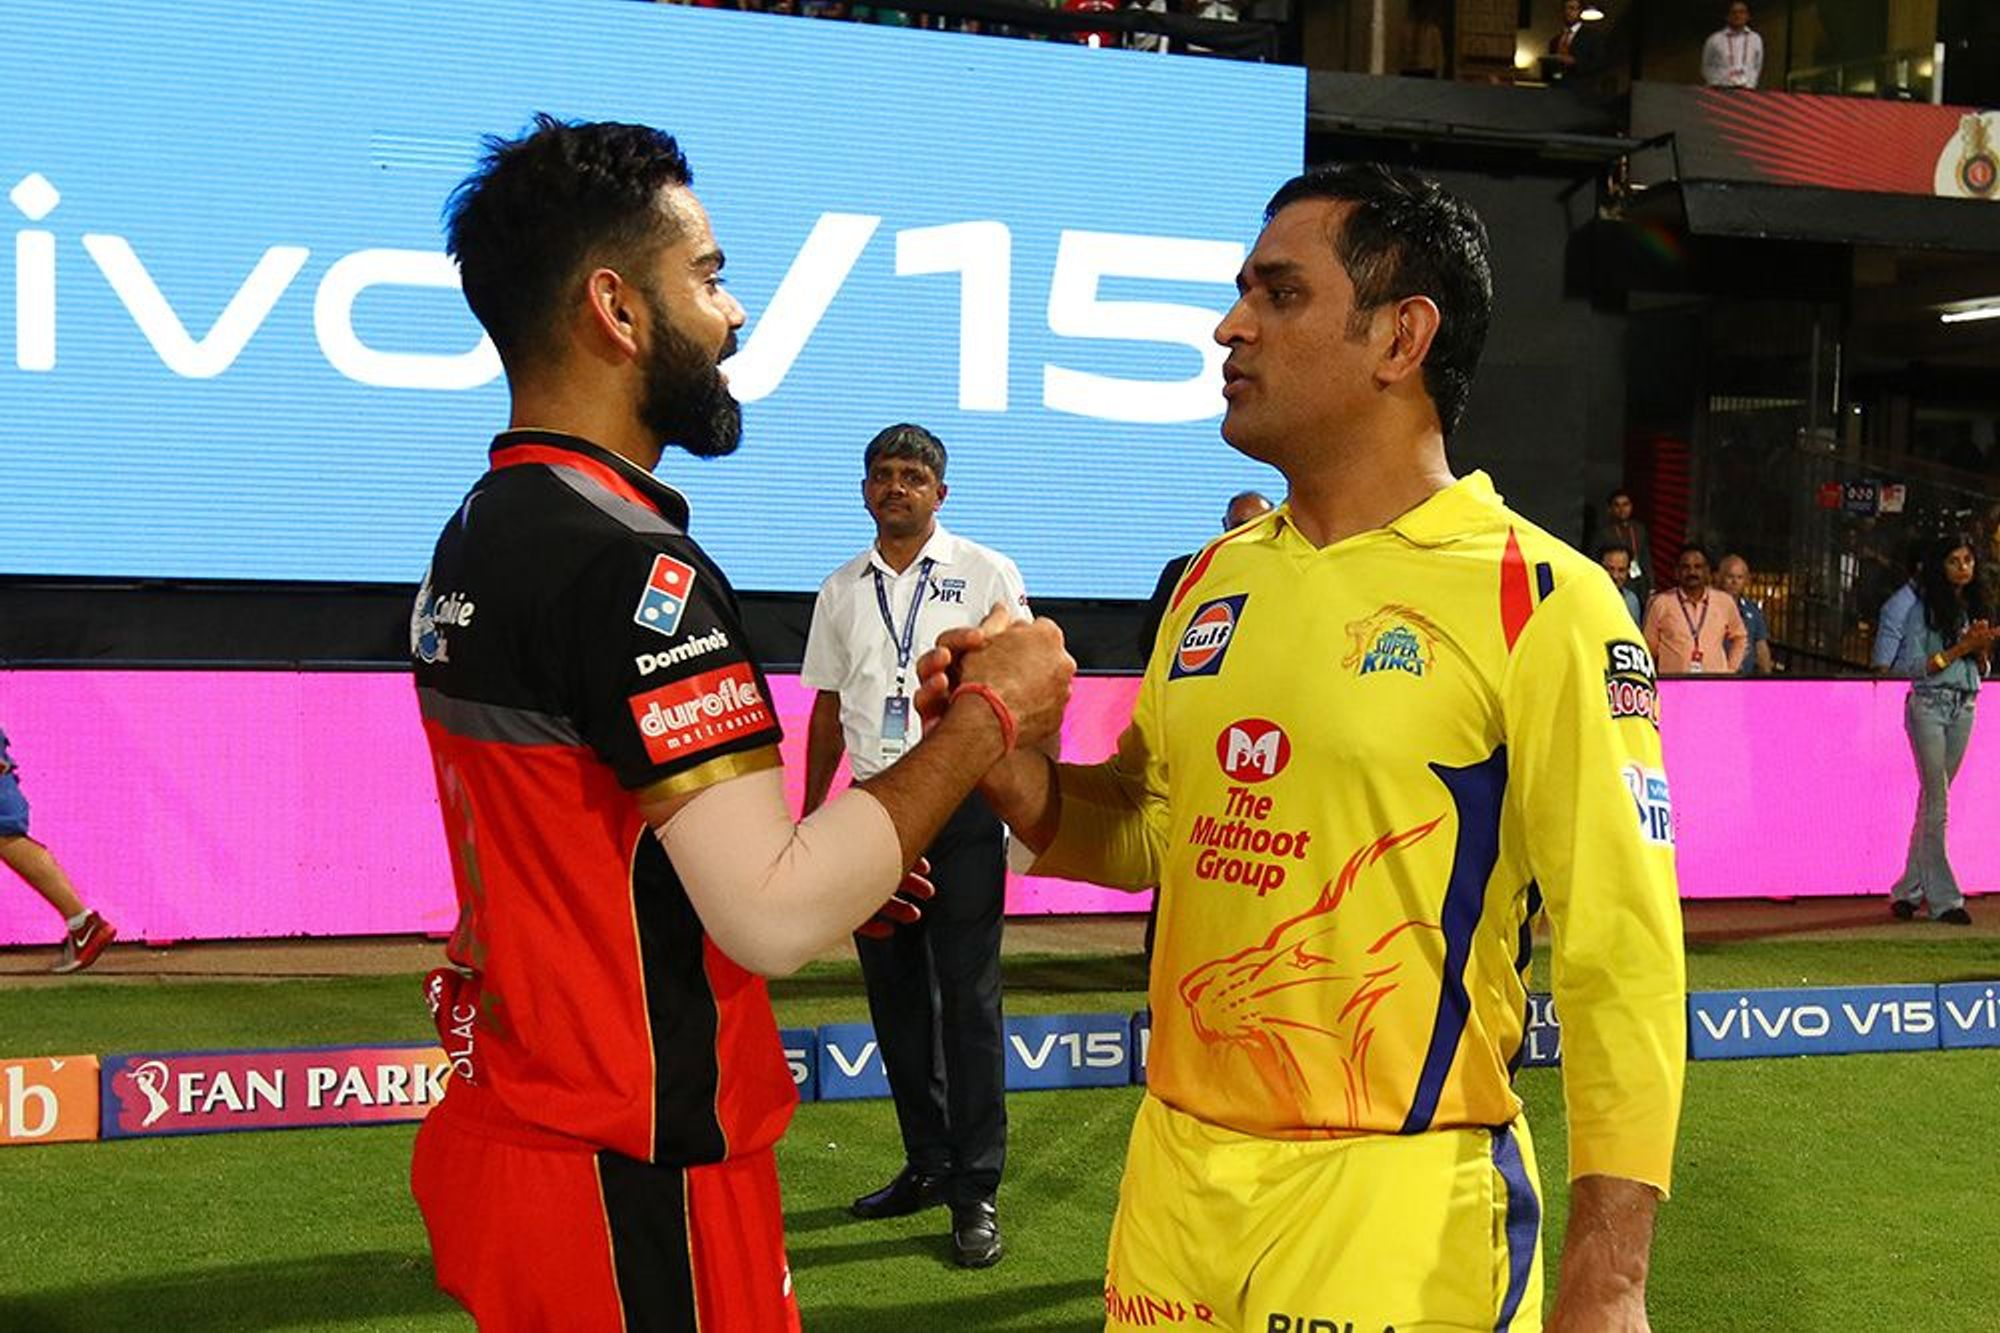 IPL 2020 to be postponed indefinitely confirms a BCCI official